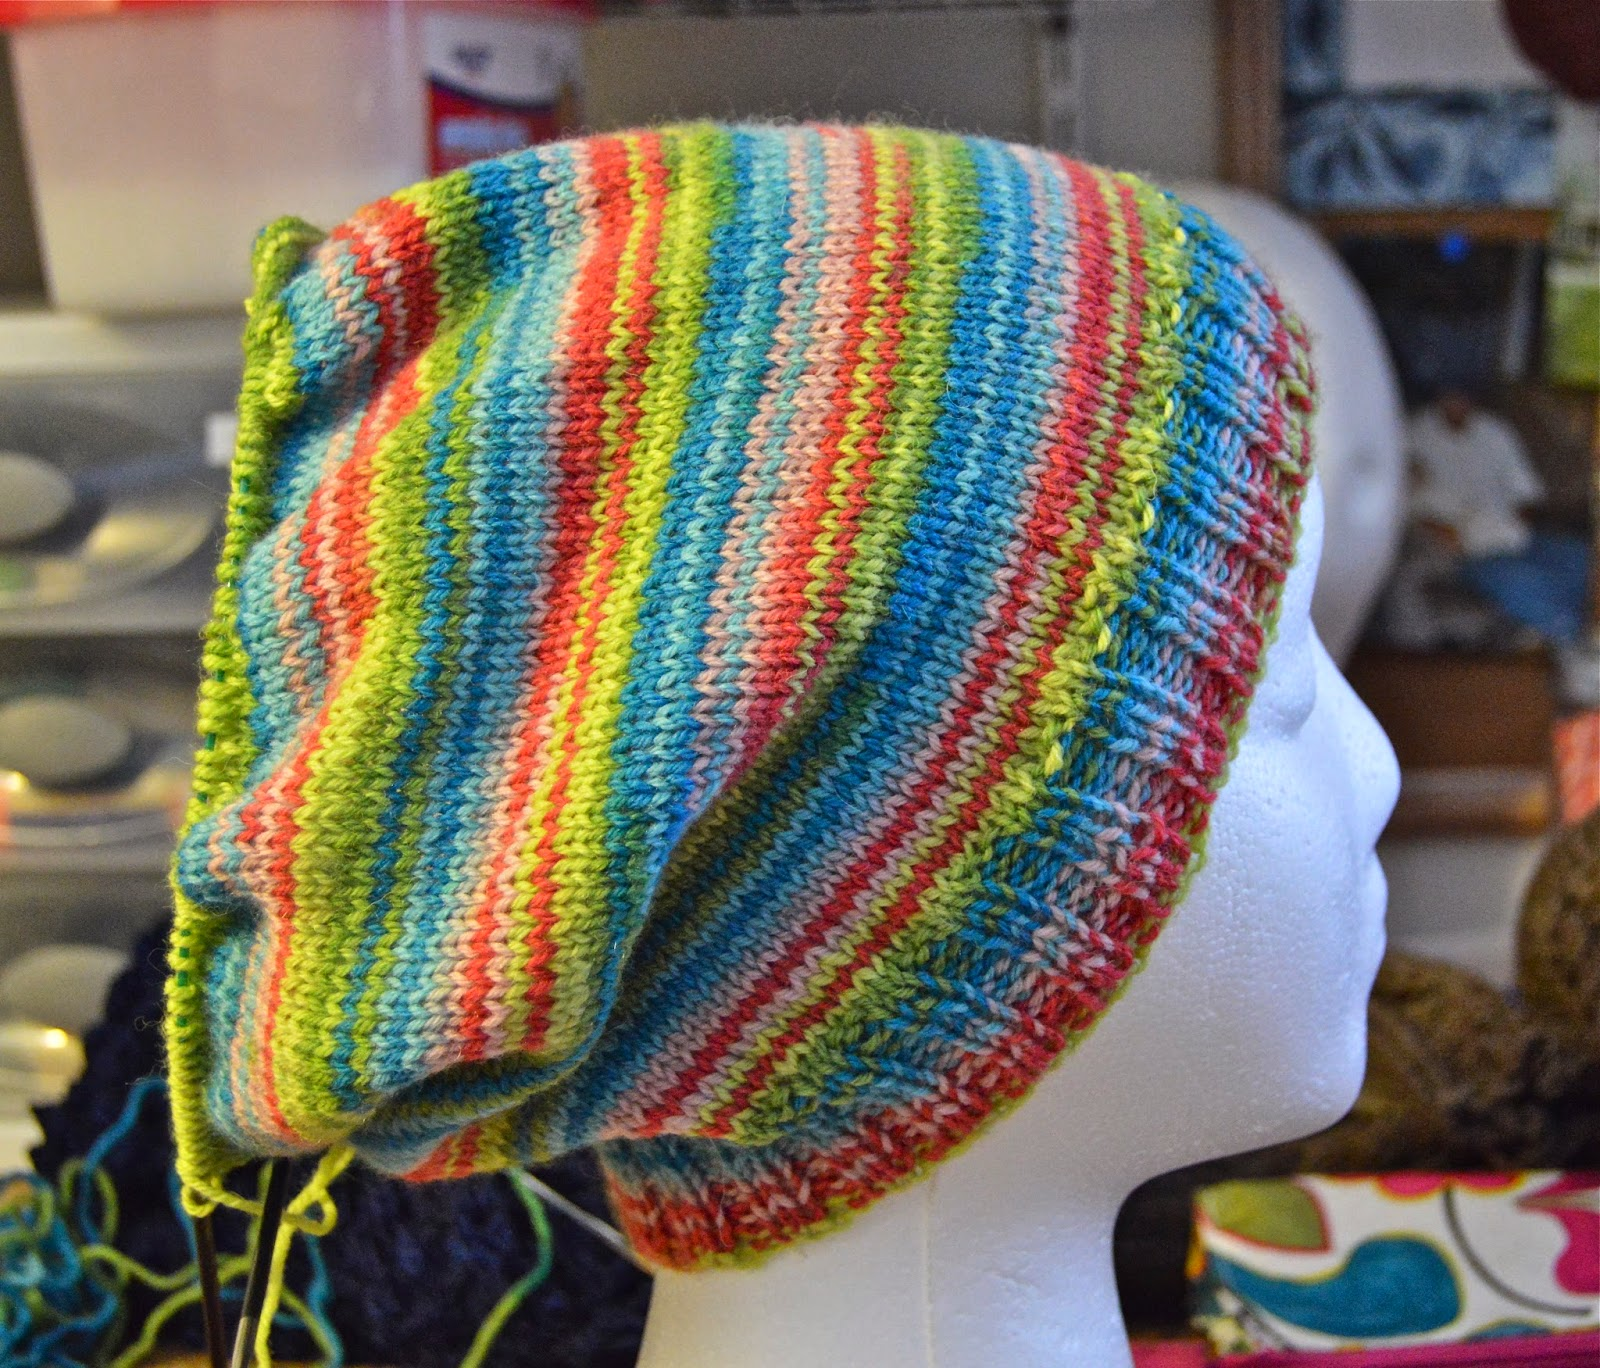 slouchy striped knit hat for dreadlocks to be for sale on https://www.etsy.com/shop/JeannieGrayKnits